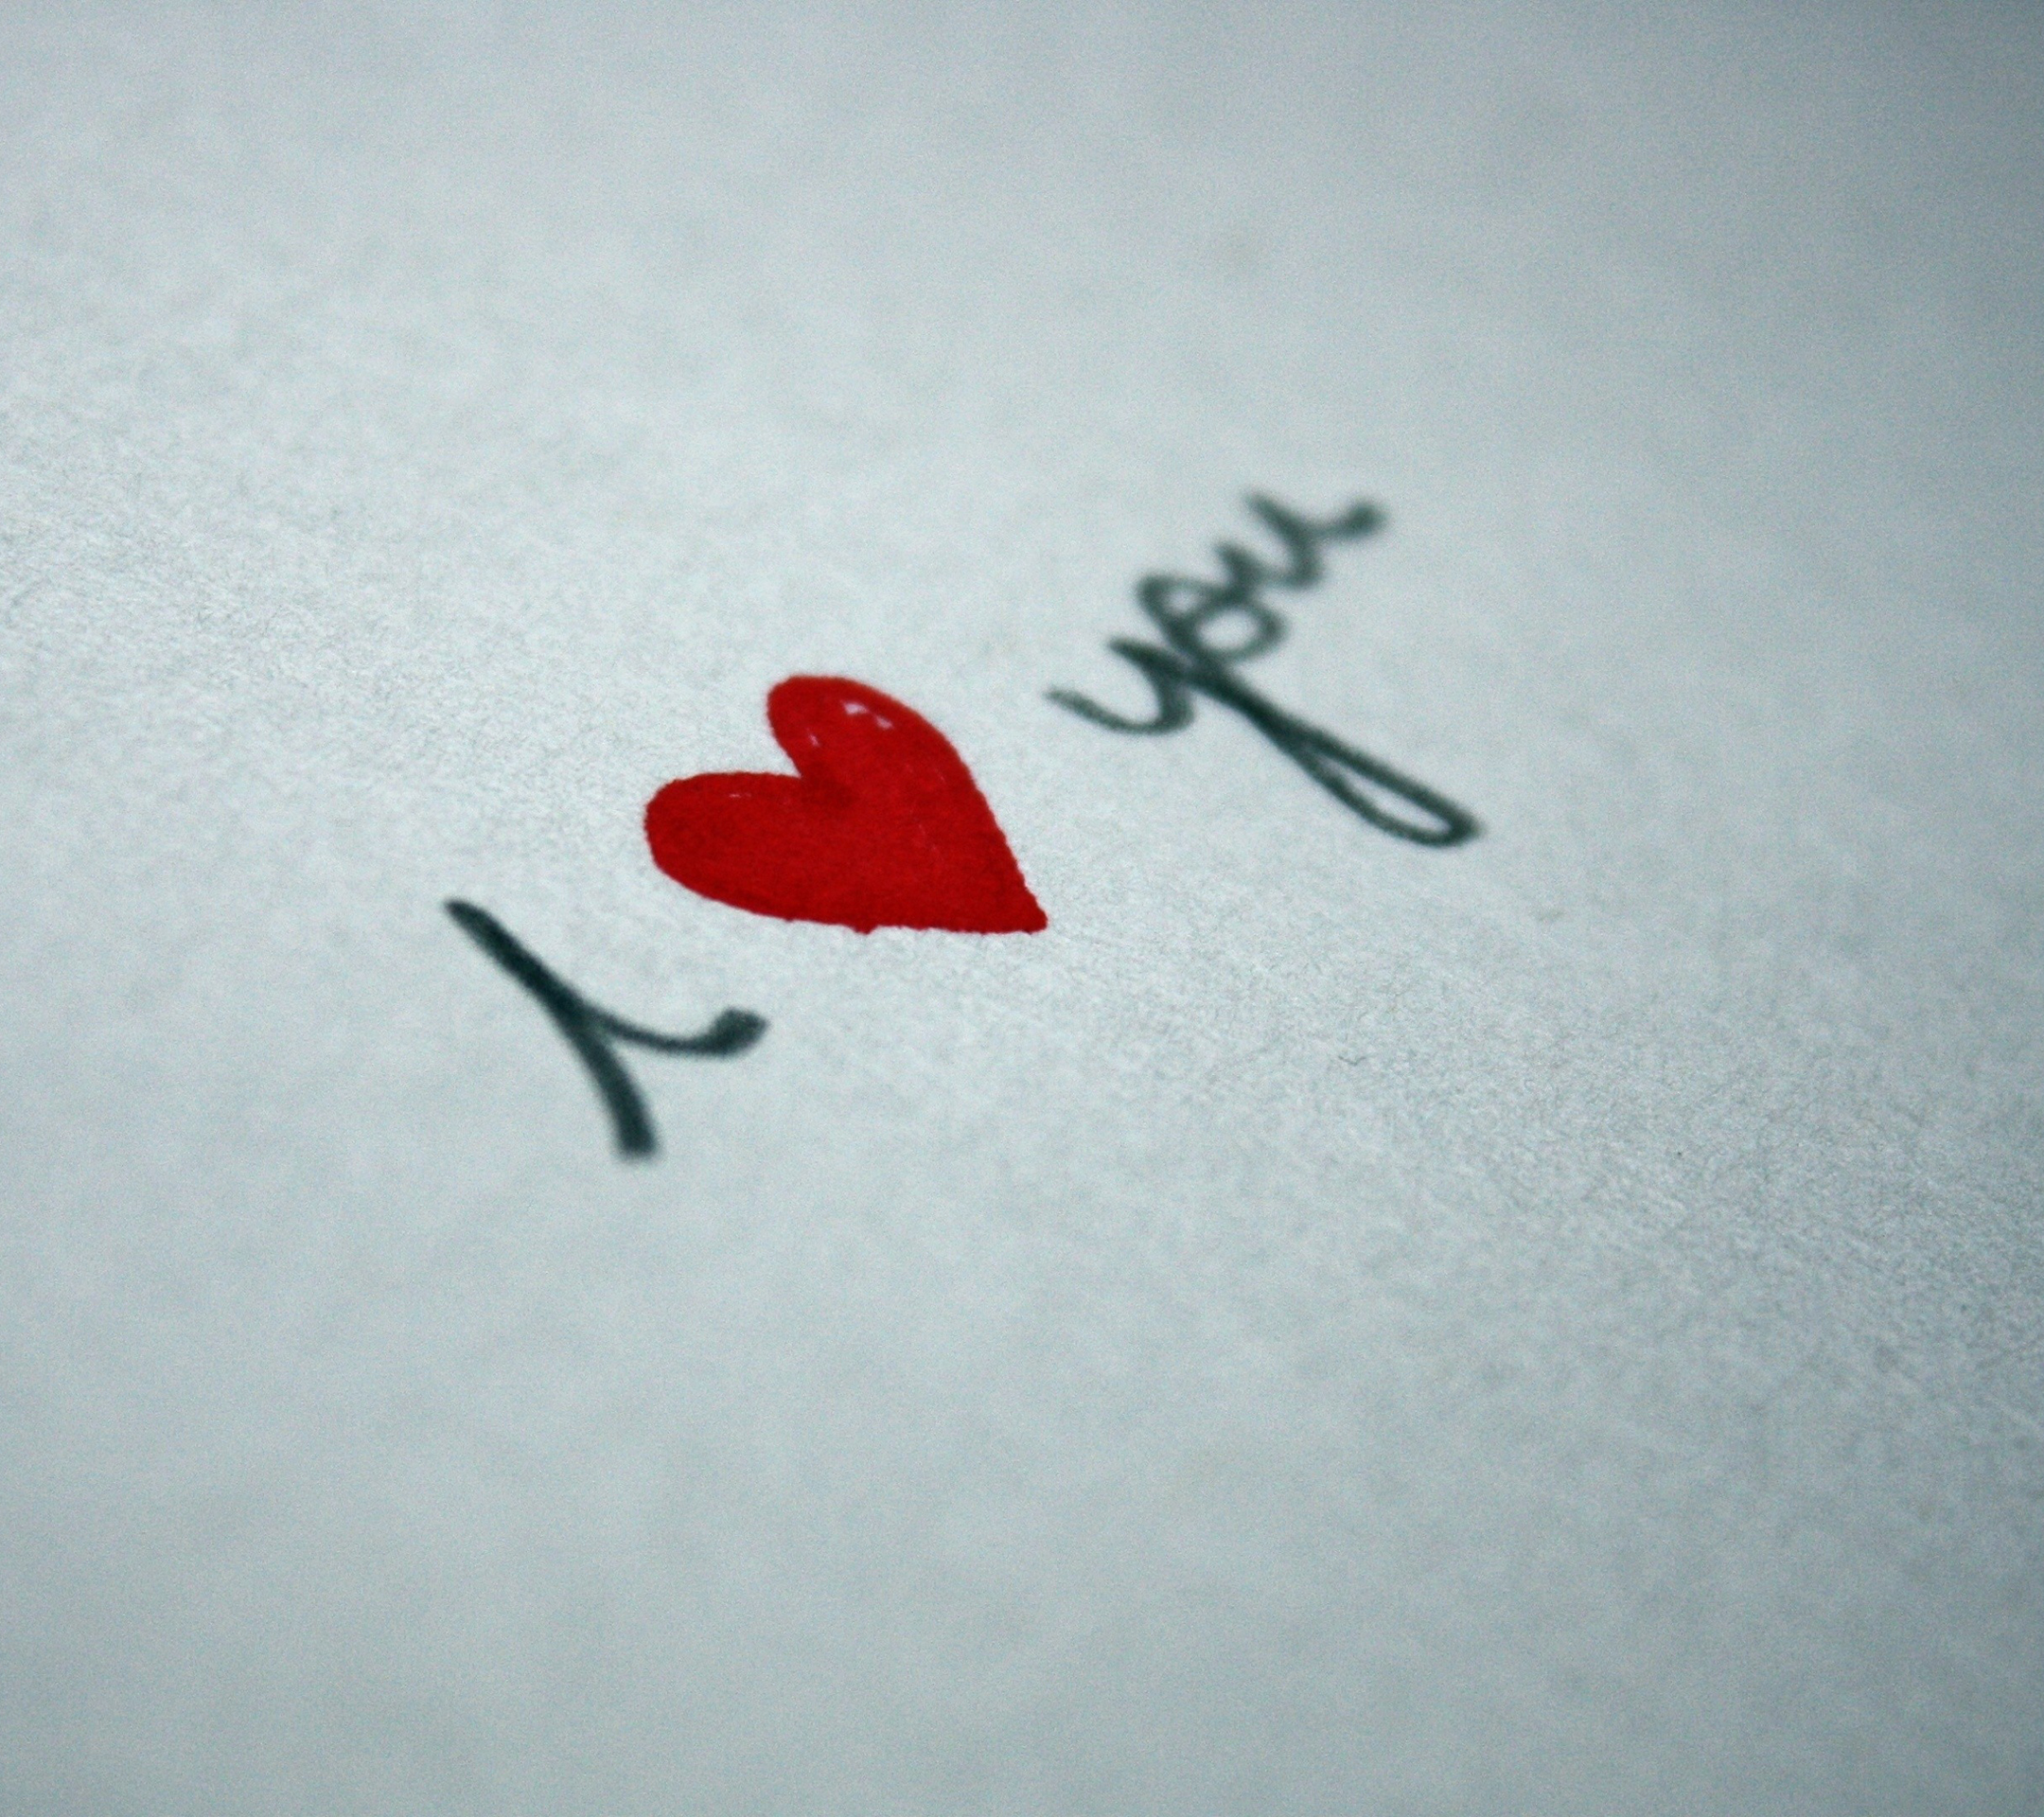 S S Letter In Love Wallpapers Posted By Sarah Thompson